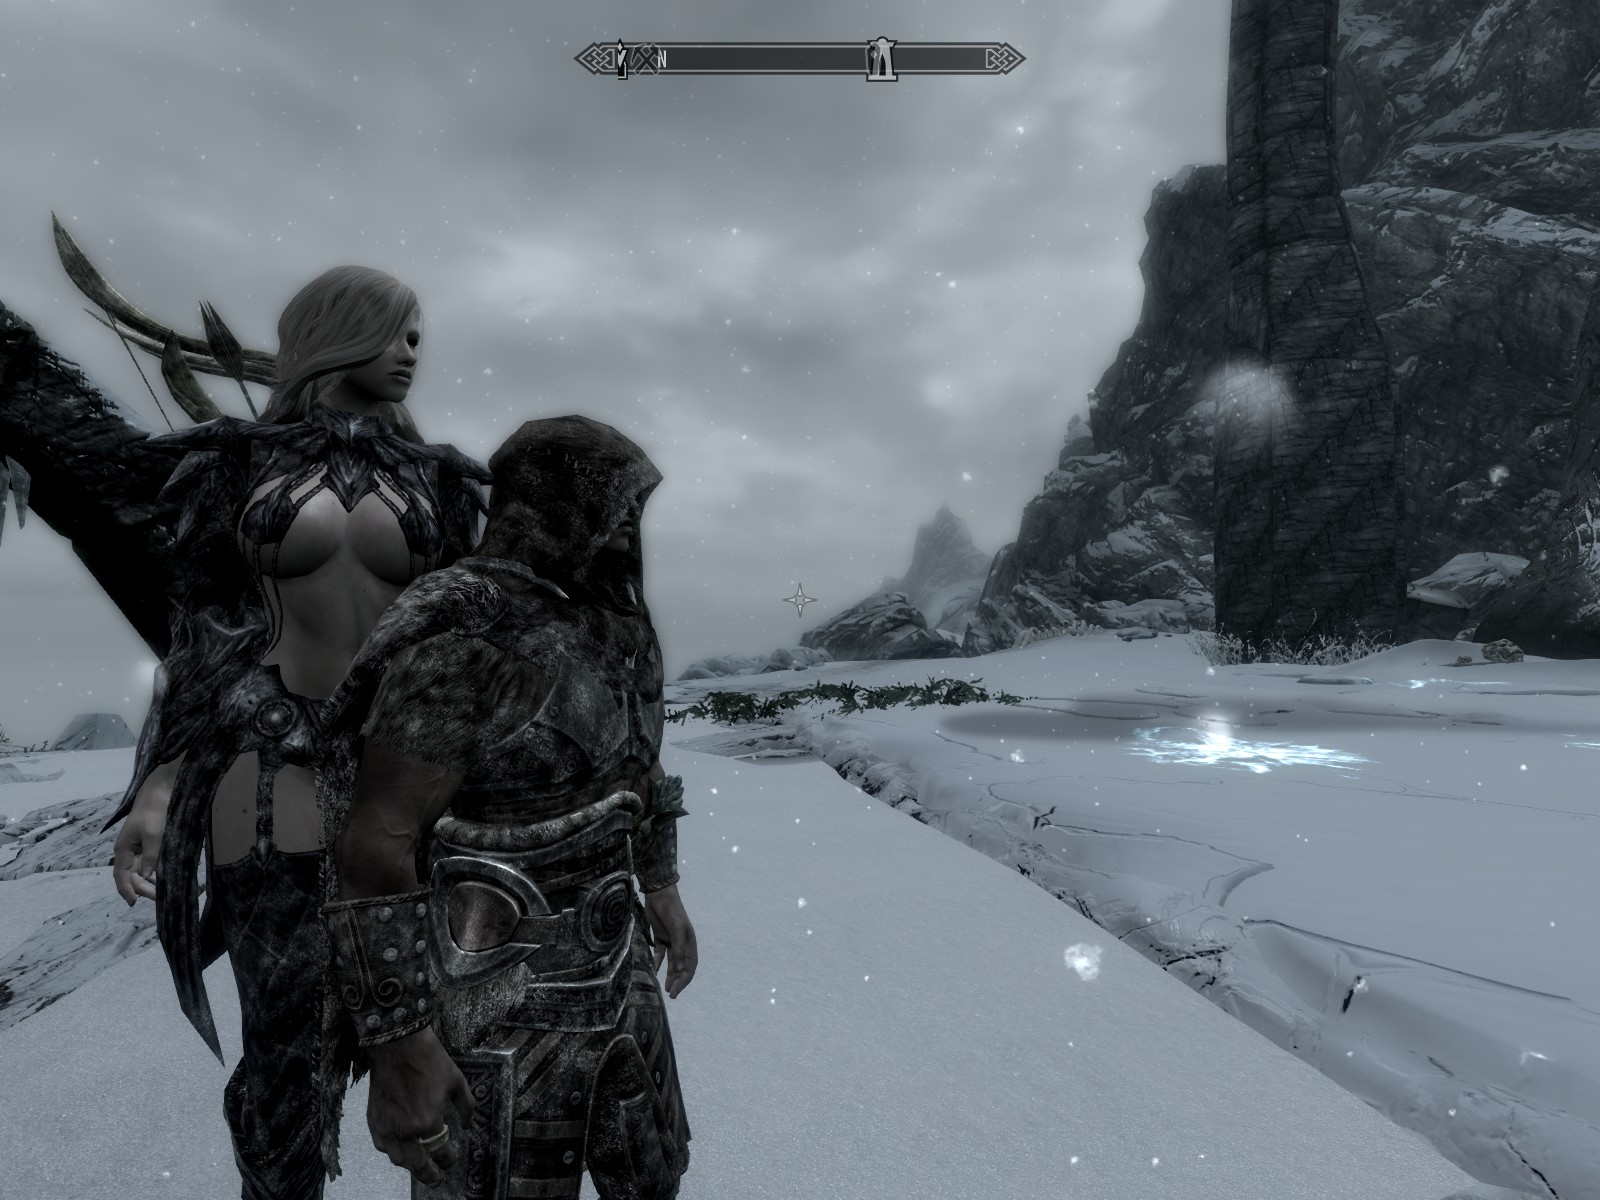 You might be able to play Skyrim Together with friends